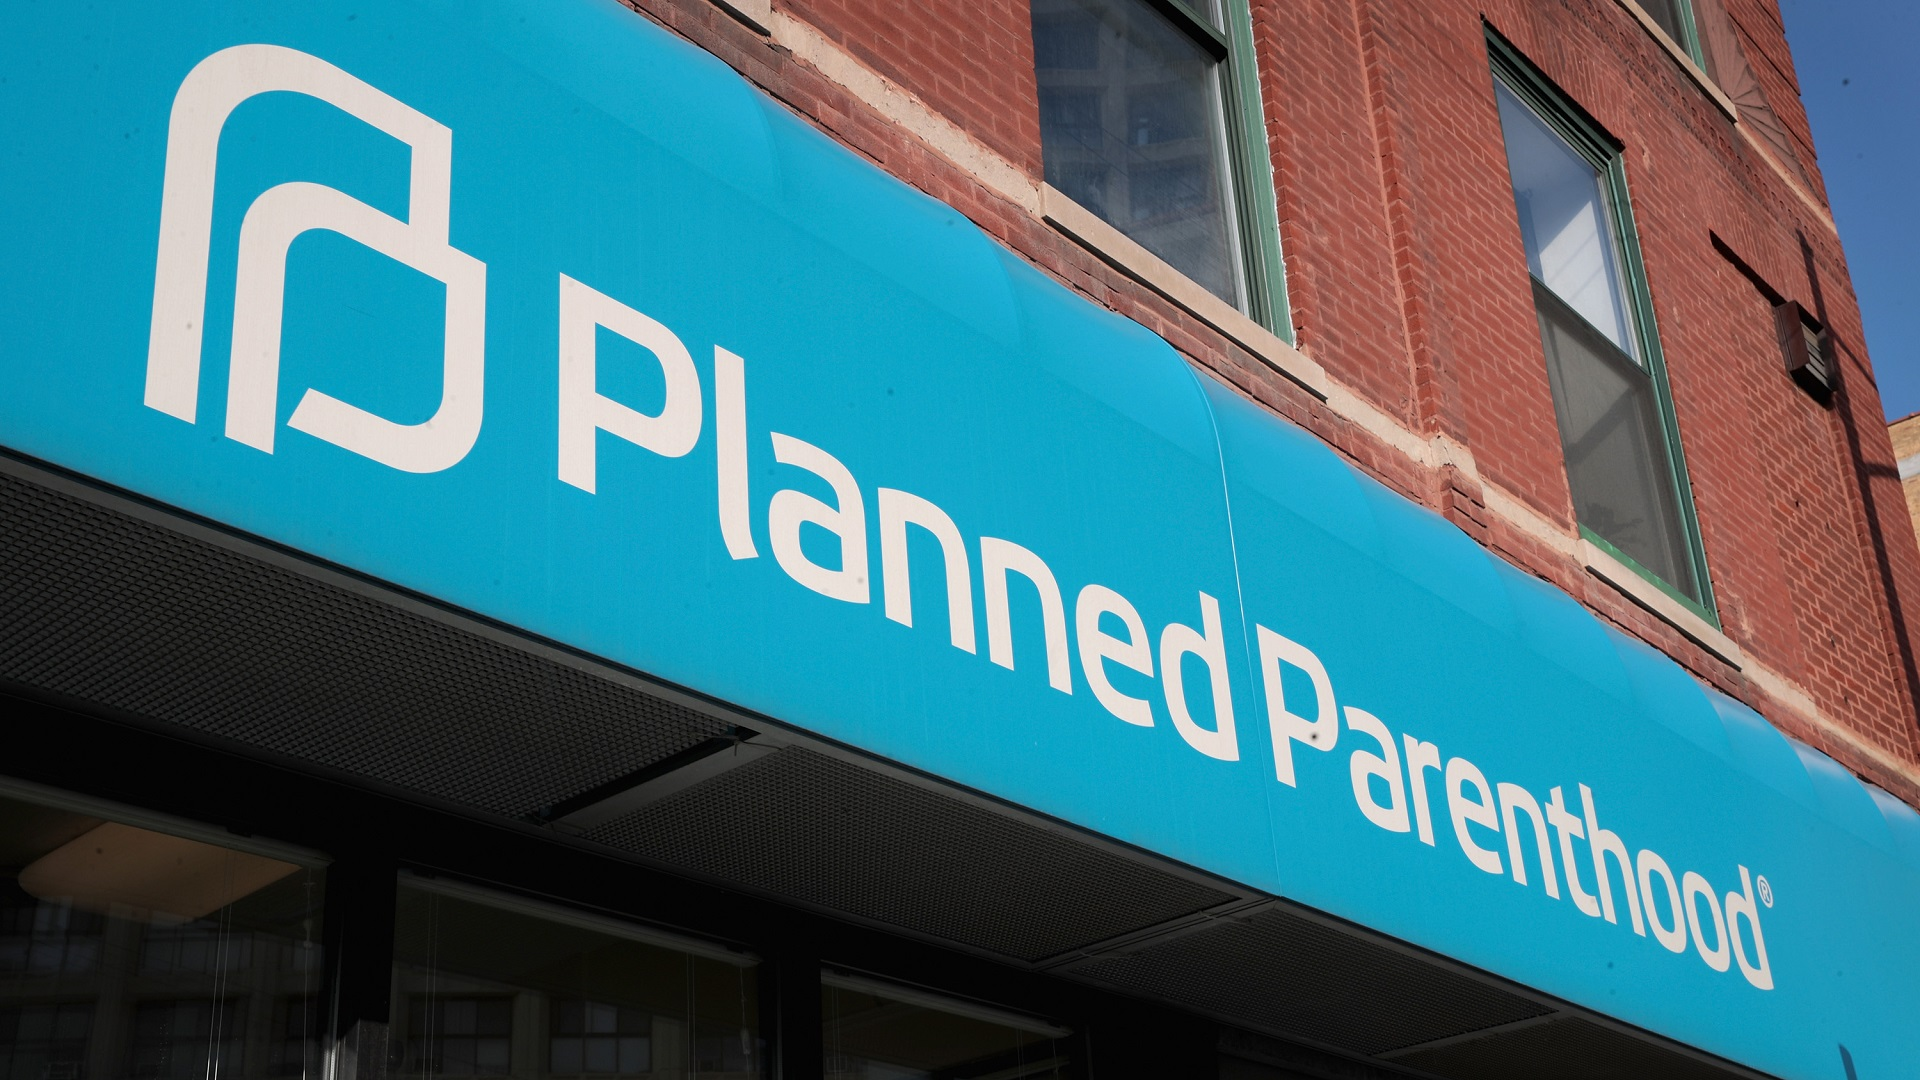 PLANNED PARENTHOOD CLINIC